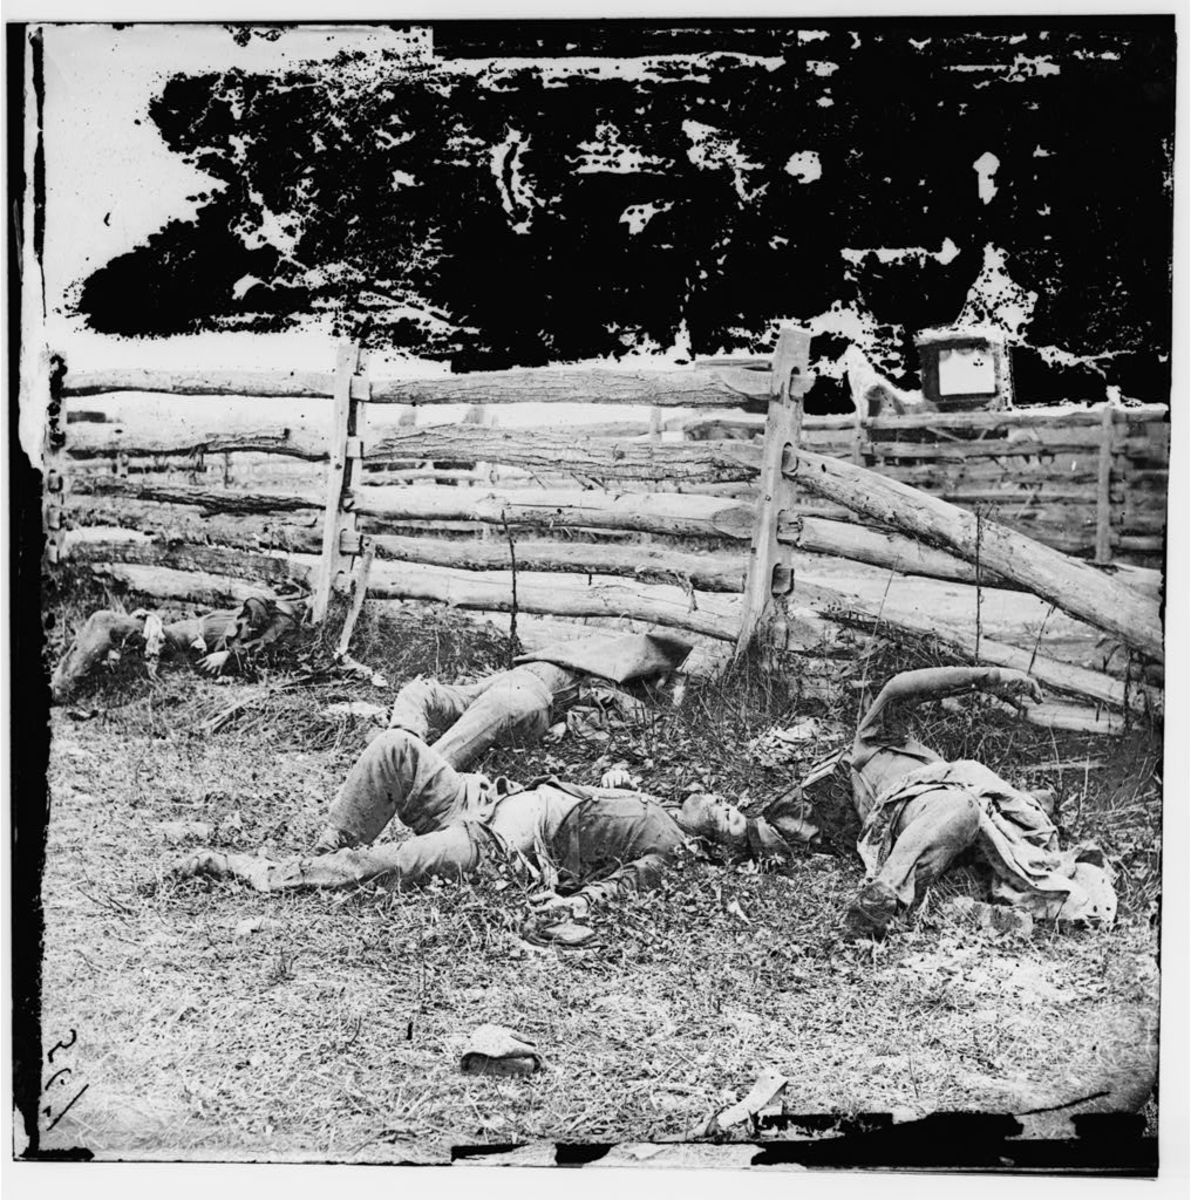 Dead Louisiana soldiers at Antietam. One of two glass plates that formed a stereoview by Alexander Gardner, September 1862.